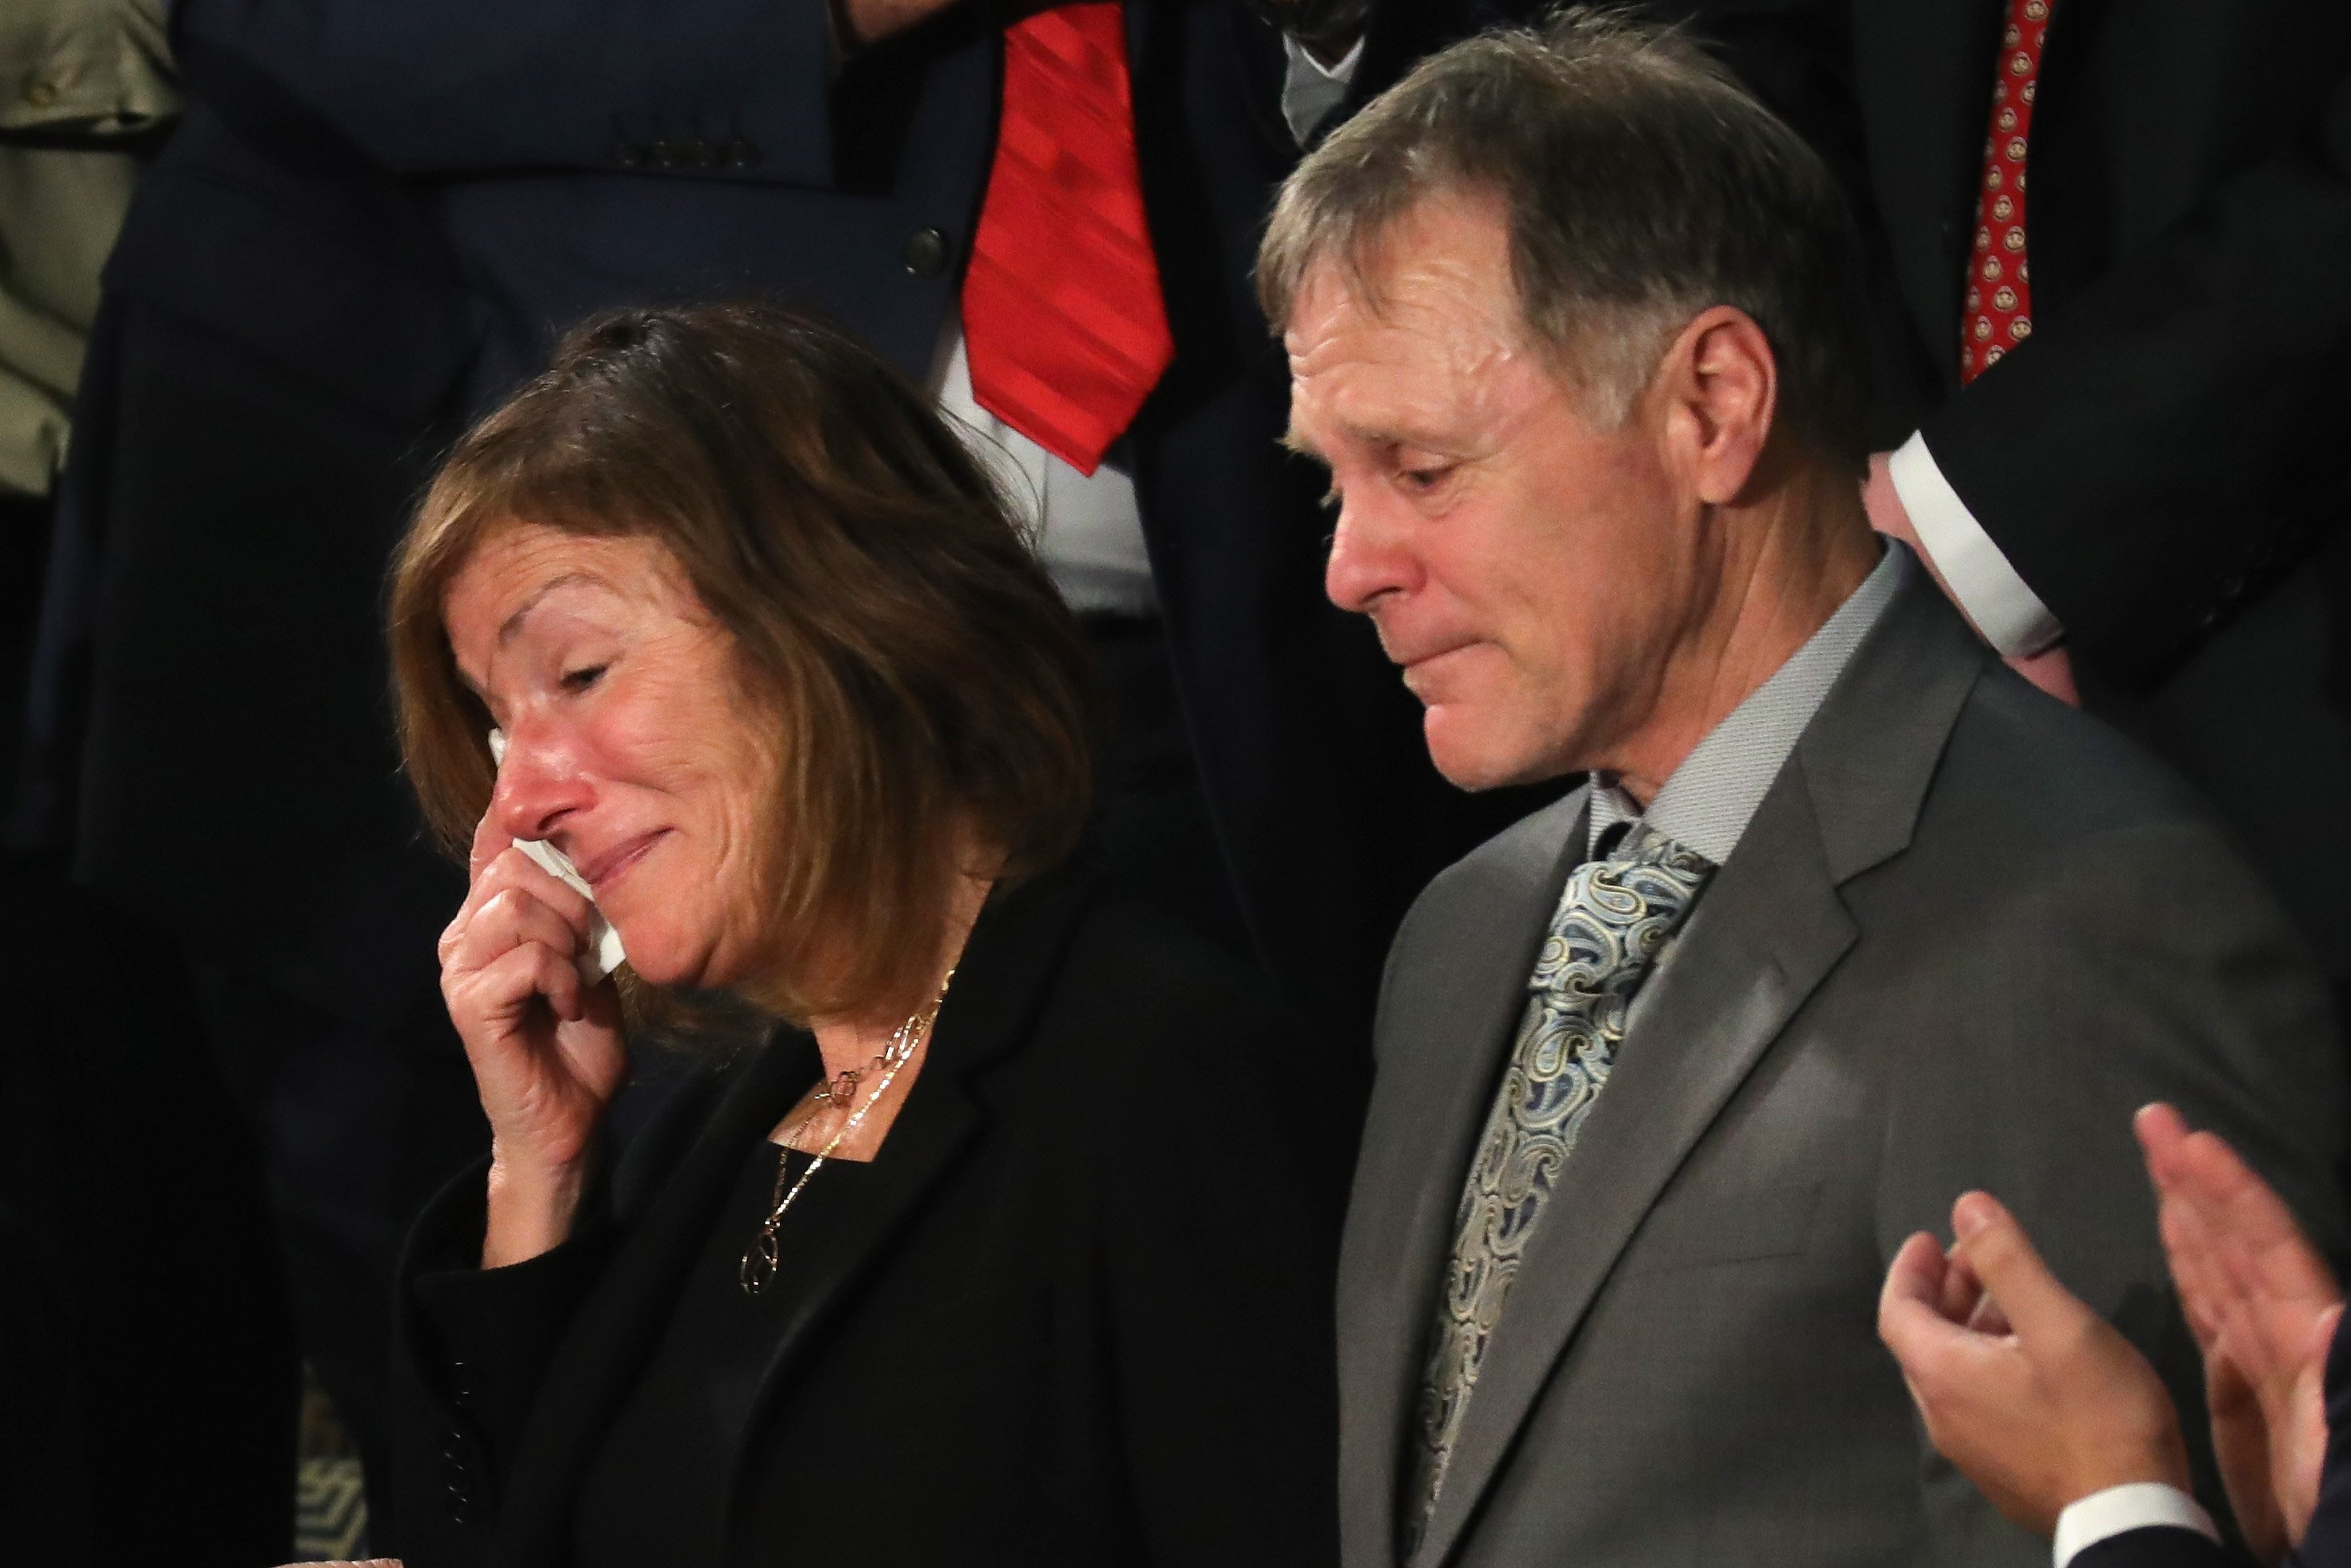 Fred and Cindy Warmbier, 22-year-old Otto Warmbier's bereaved parents. Source: Getty Images